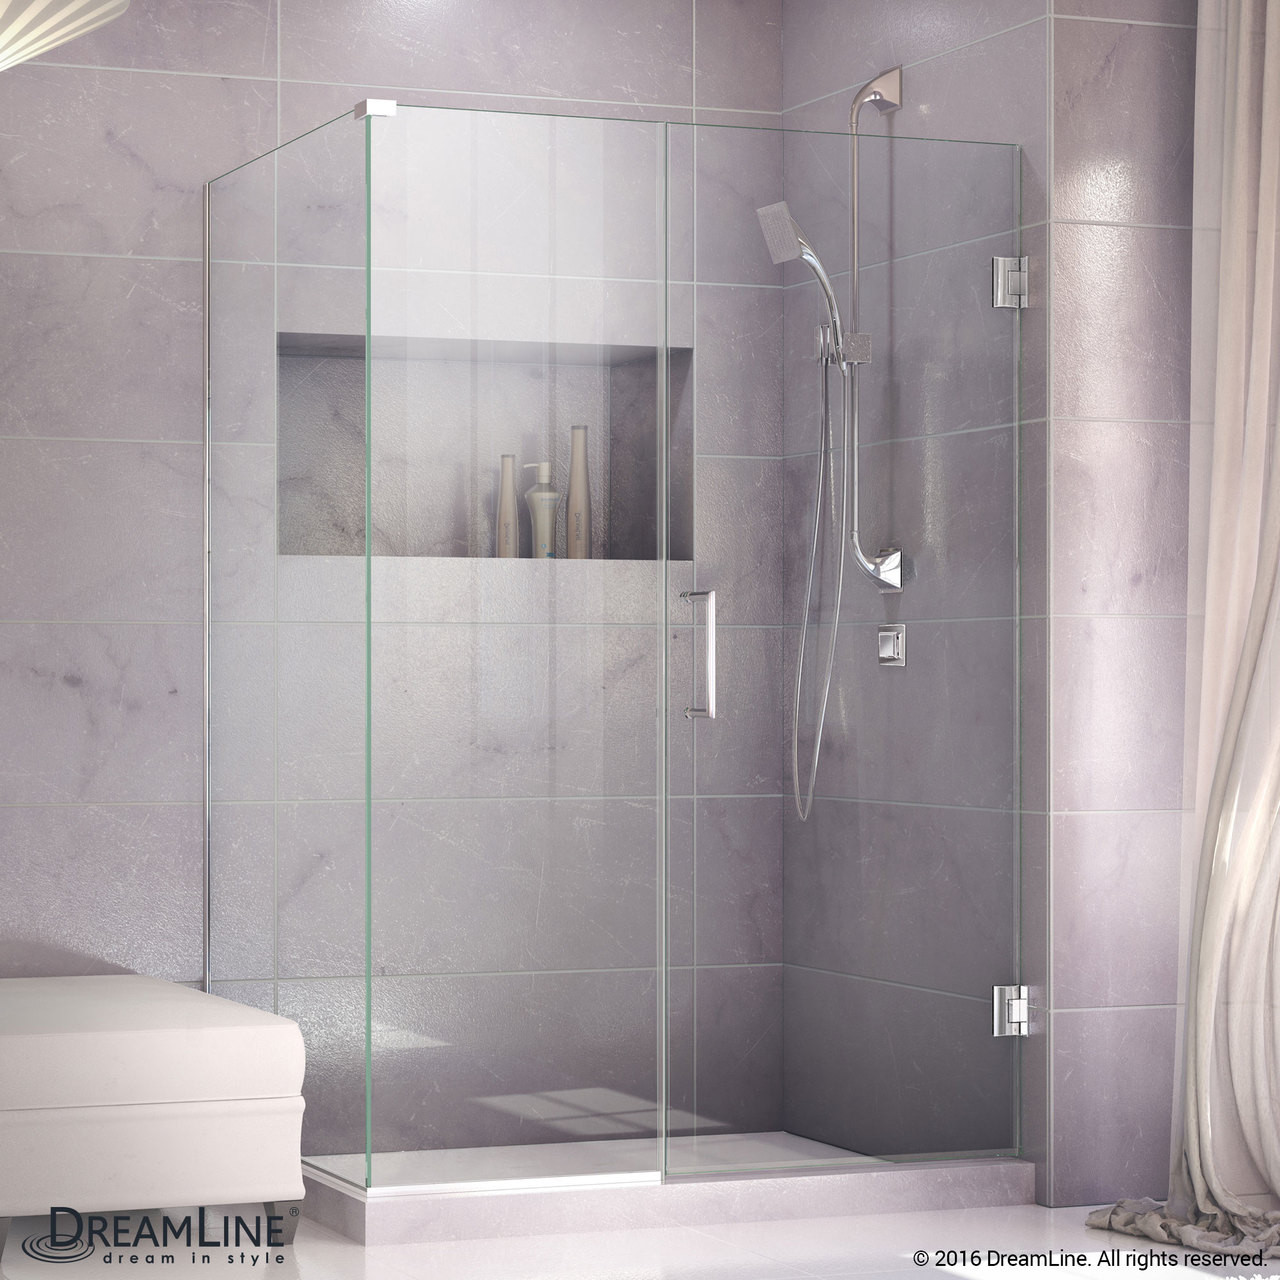 Dreamline Shen 24435340 01 Unidoor Plus 43 1 2 In W X 34 3 8 In D X 72 In H Hinged Shower Enclosure Chrome Hardware